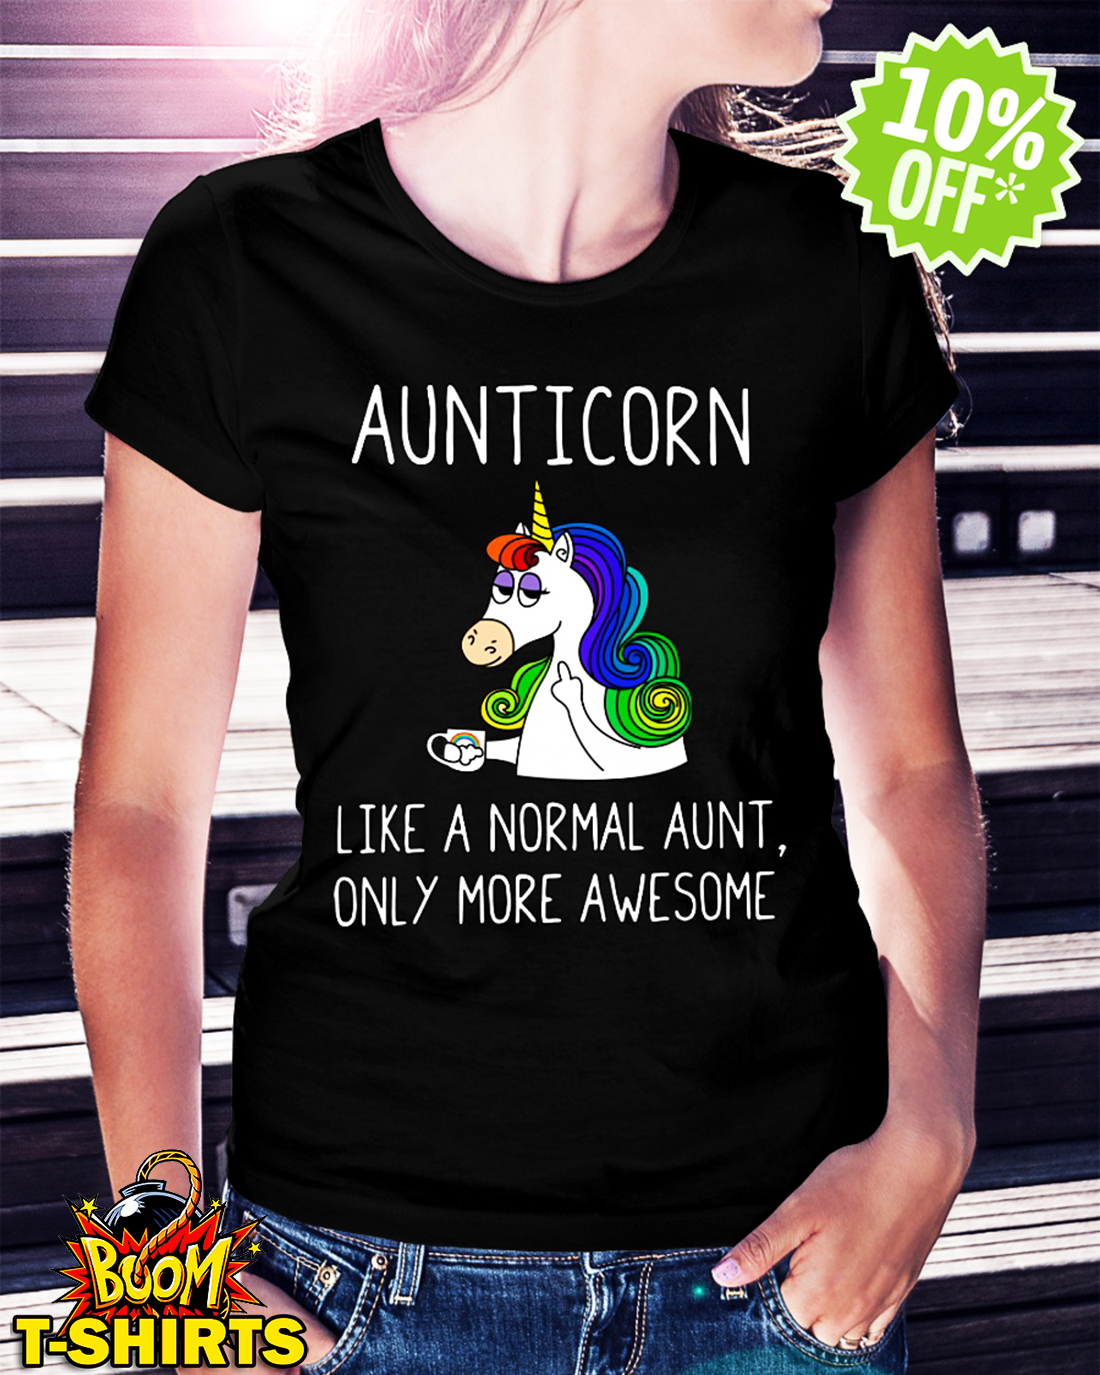 49fdb2c7b BEST PRICE) Aunticorn like a normal aunt only more awesome shirt ...